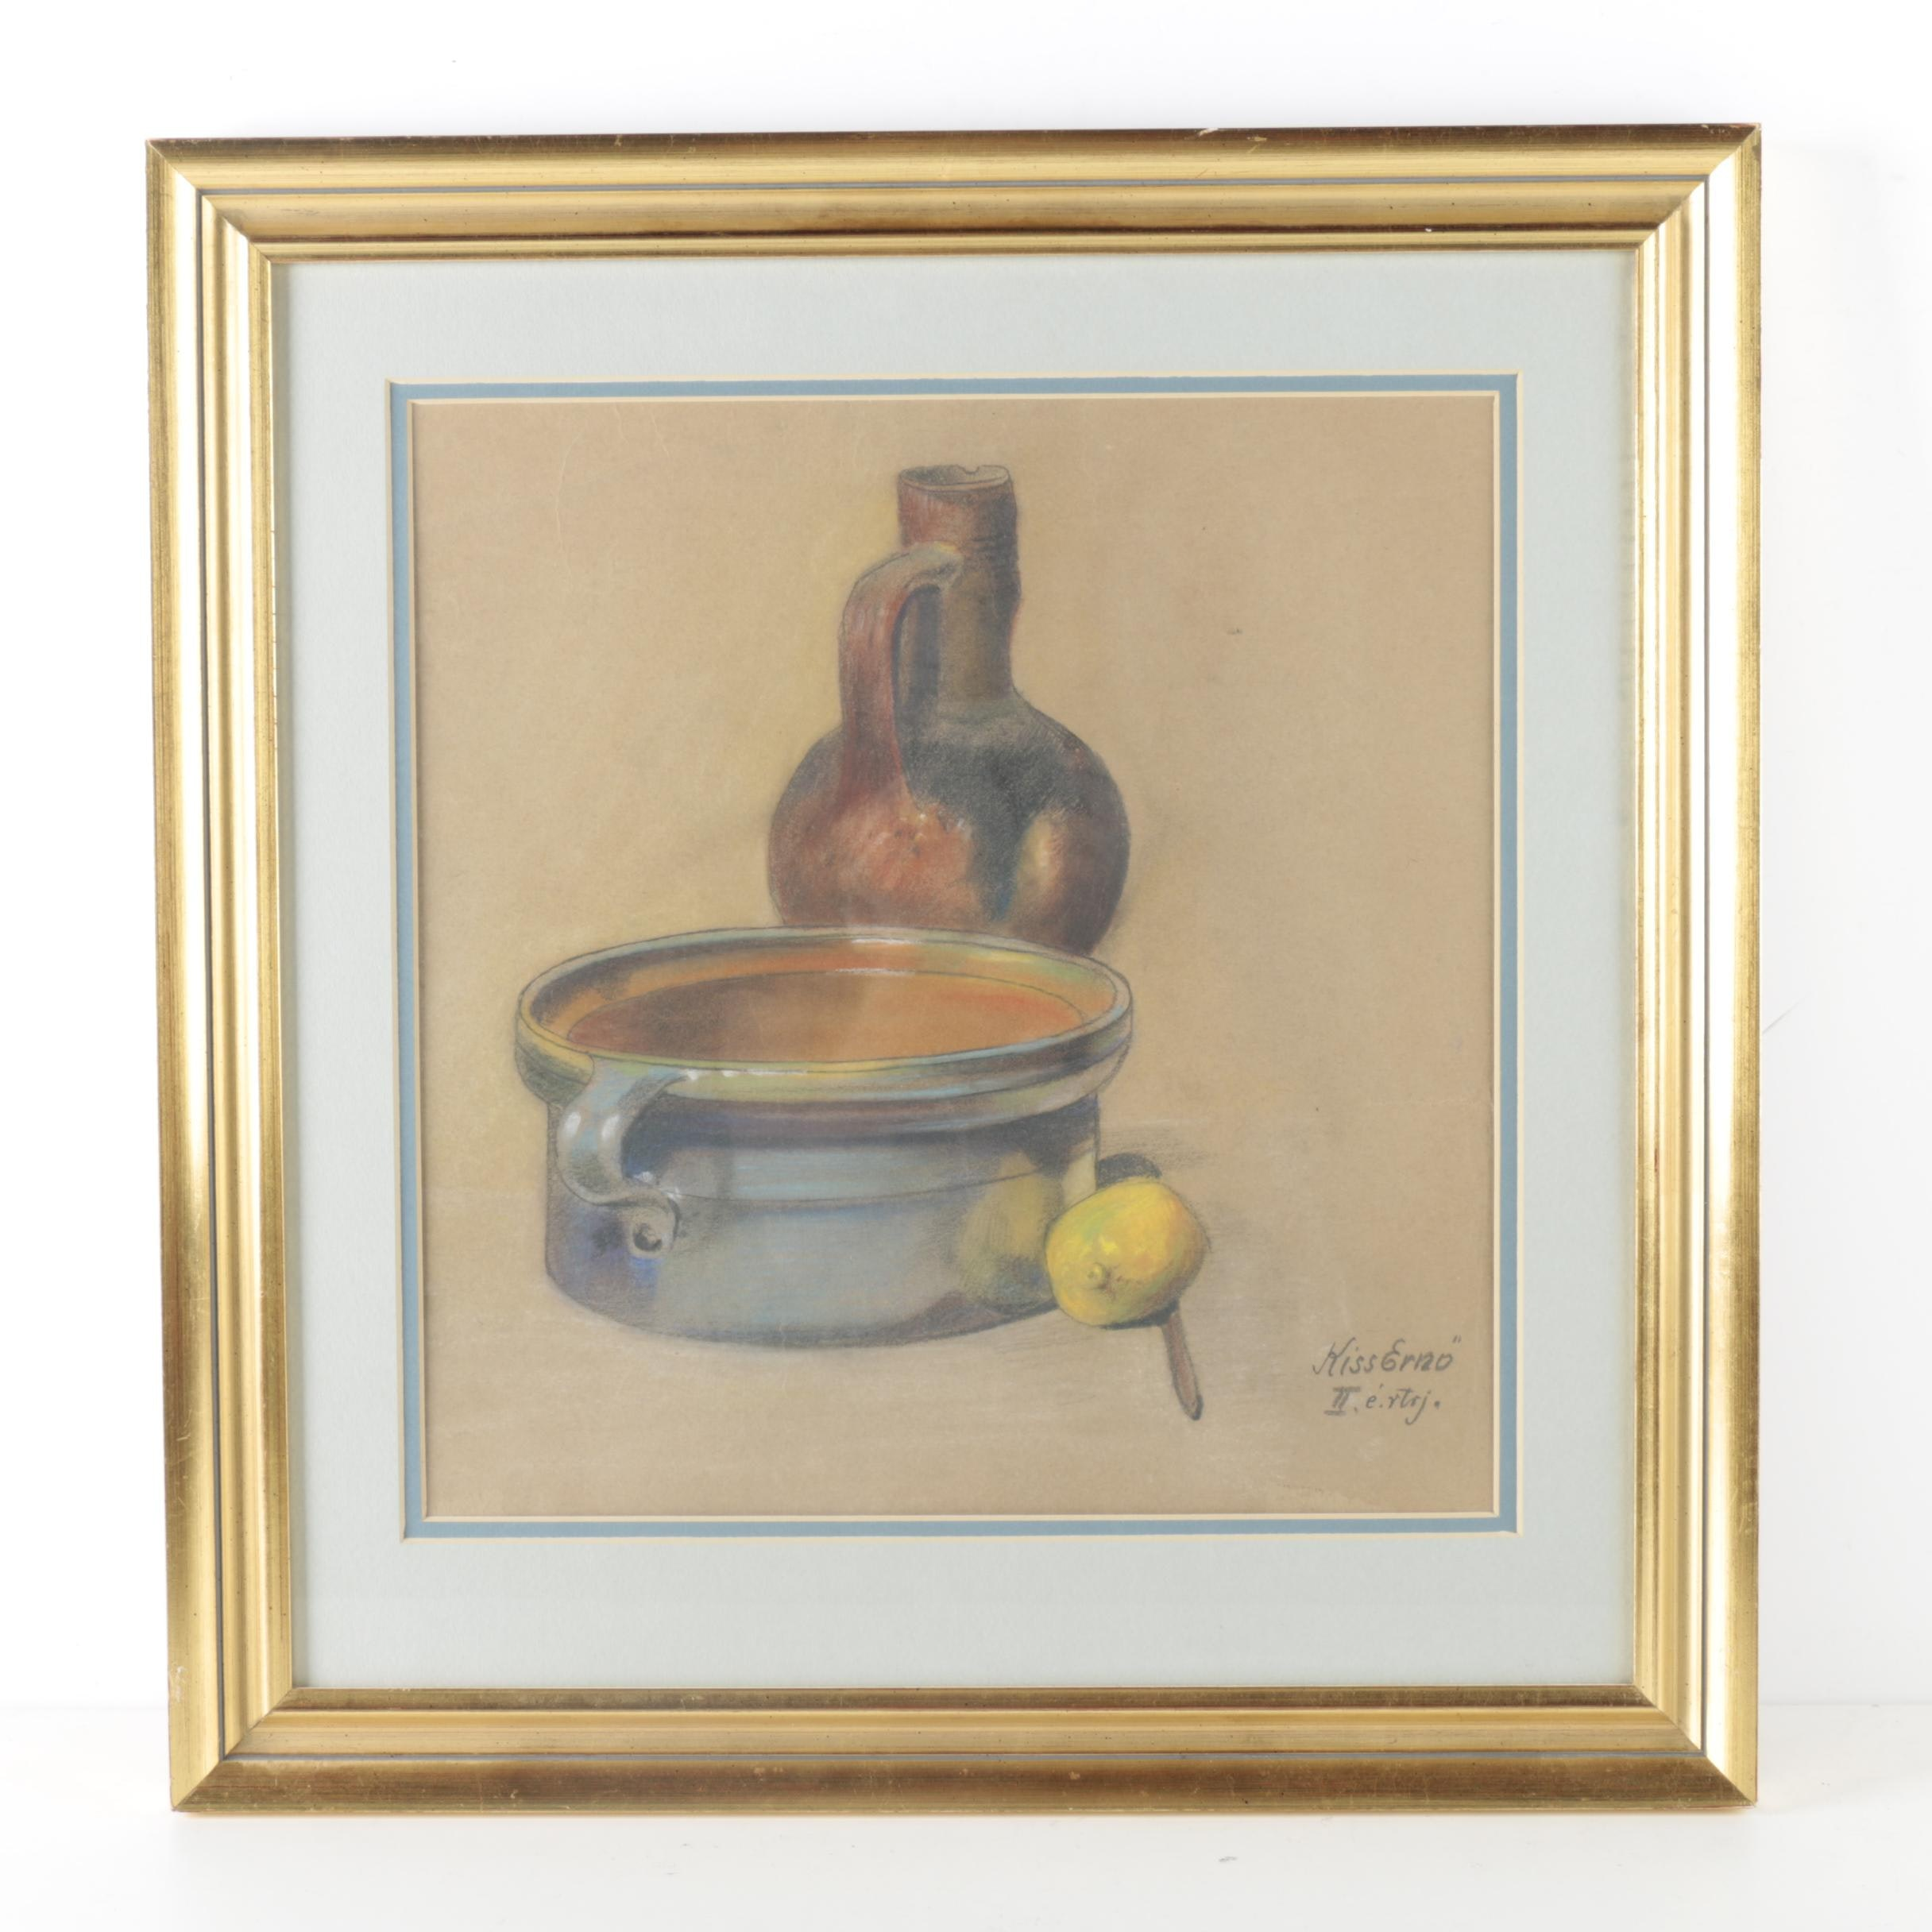 Pastel Drawing on Paper of a Still Life